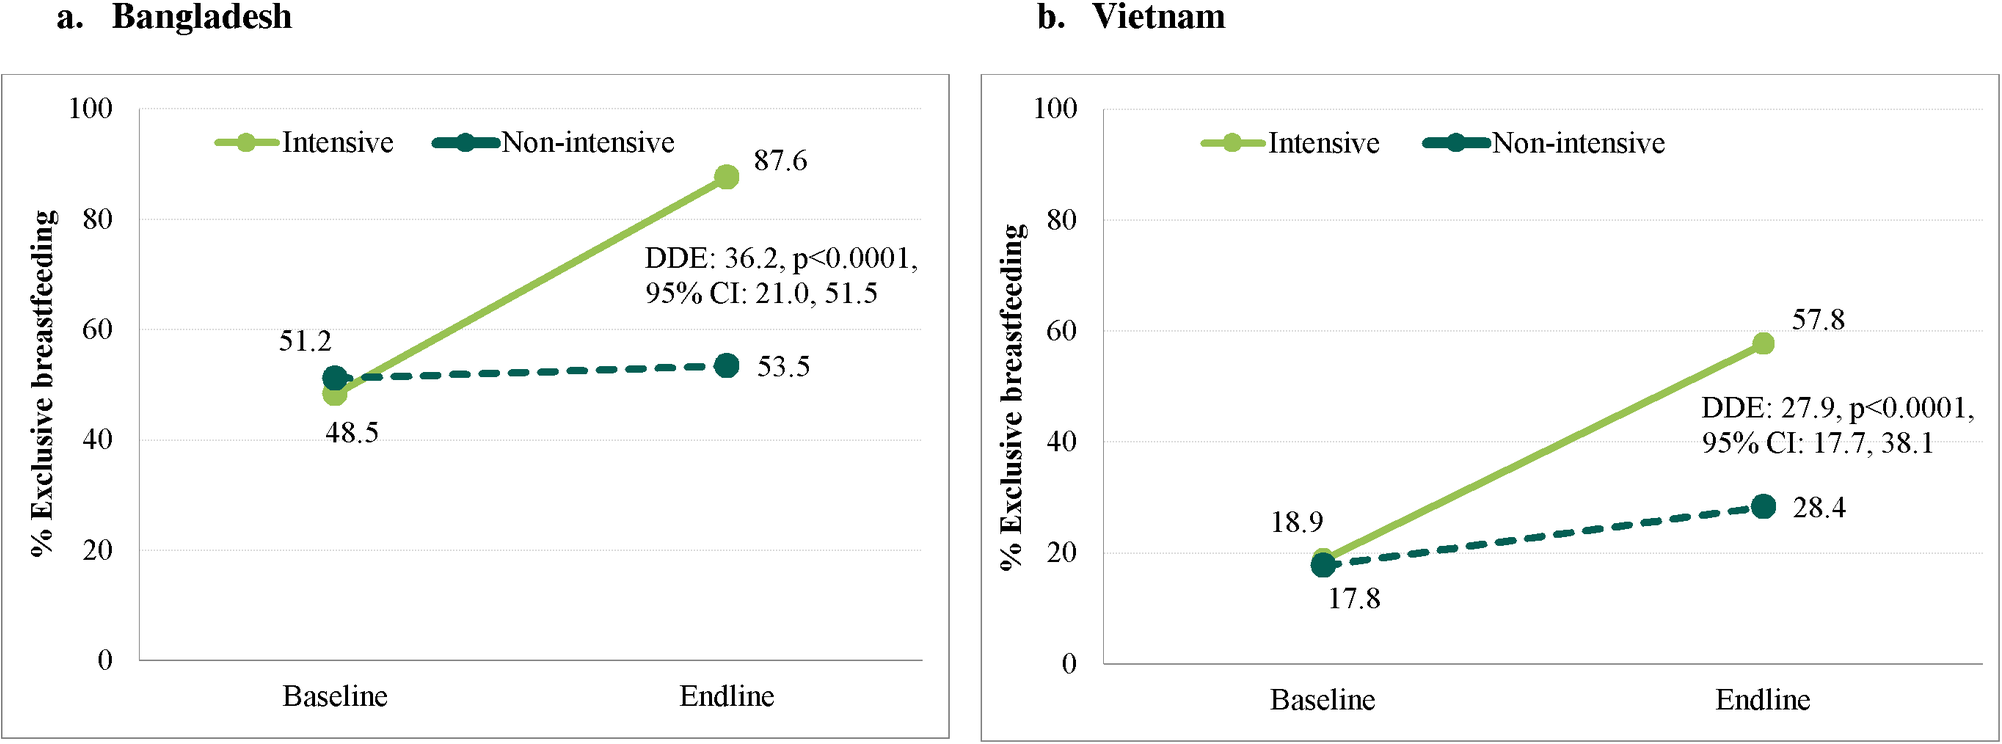 Prevalence of exclusive breastfeeding practices by program and survey round in Bangladesh and Viet Nam.